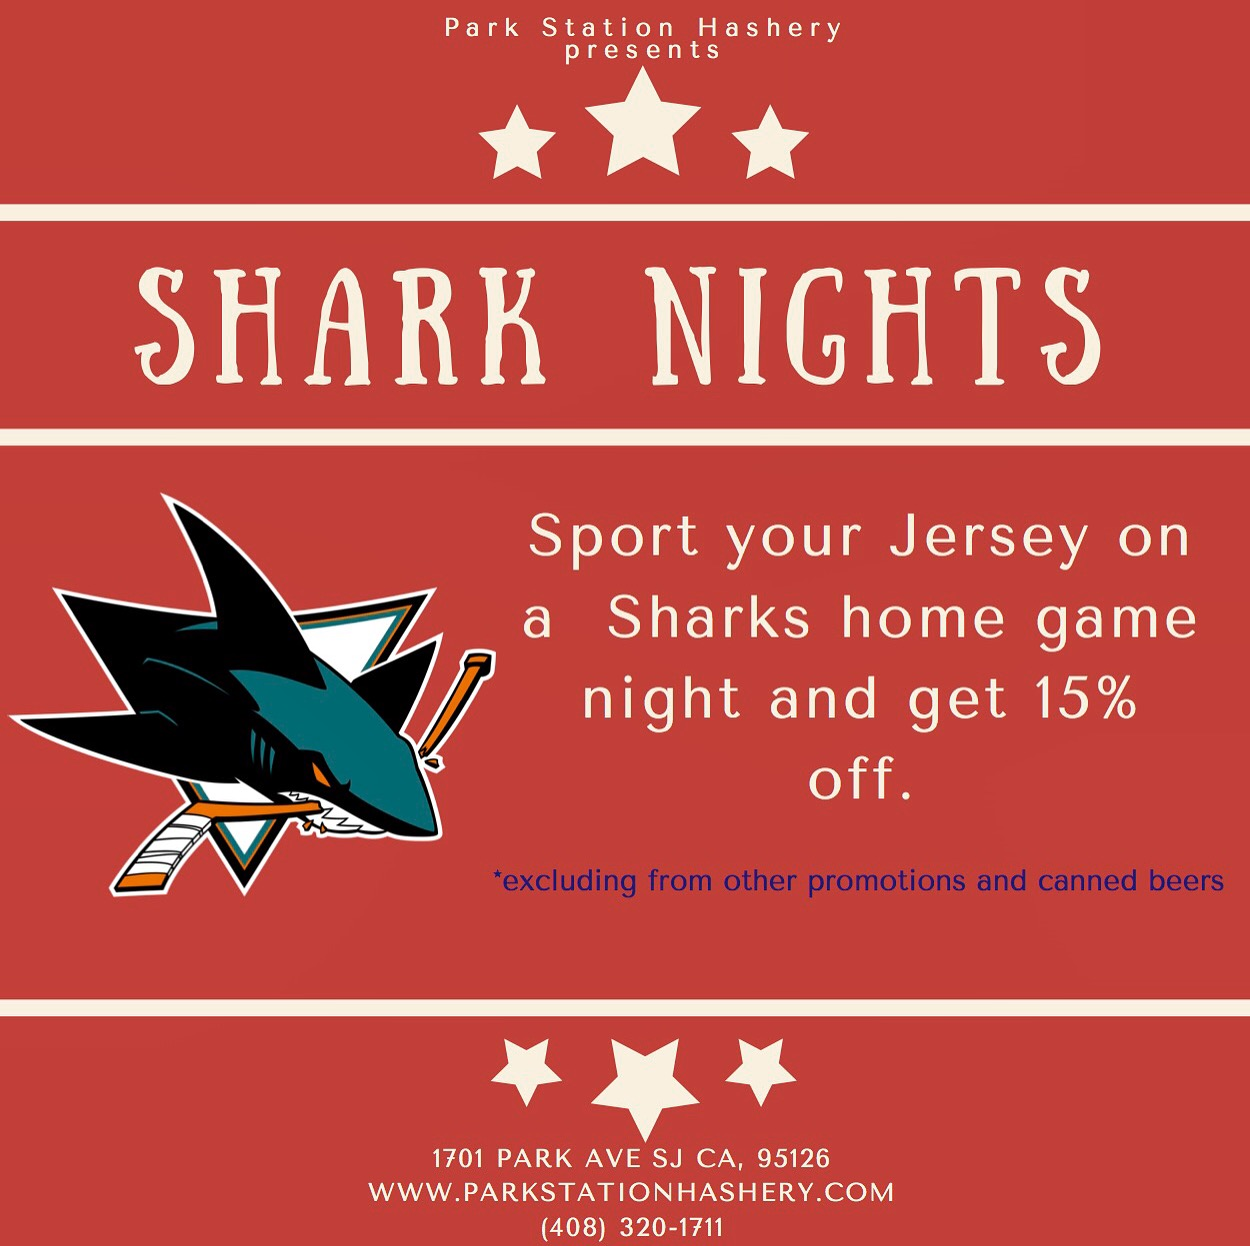 Sharks Jersey Nights - We will show every home game in house so sport your jersey to receive 15% off your total.*excluding other promotions and canned beers